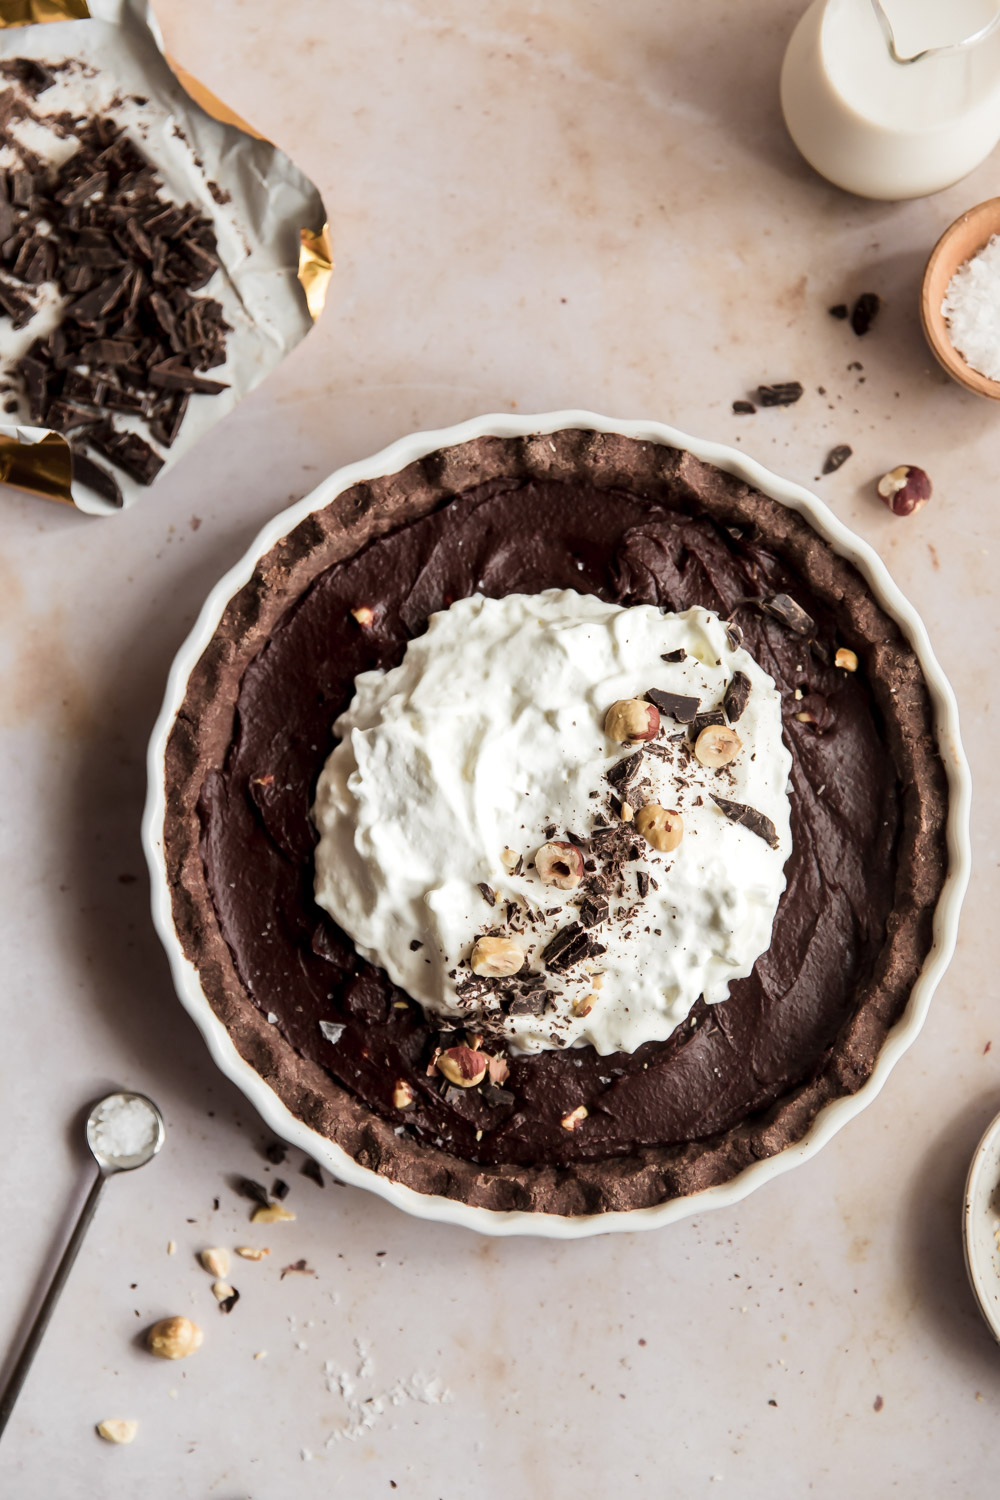 If you're looking for a healthy chocolate holiday treat, look no further than these Chocolate Hazelnut Tahini Ganache Tarts, gluten and dairy-free and low in sugar!